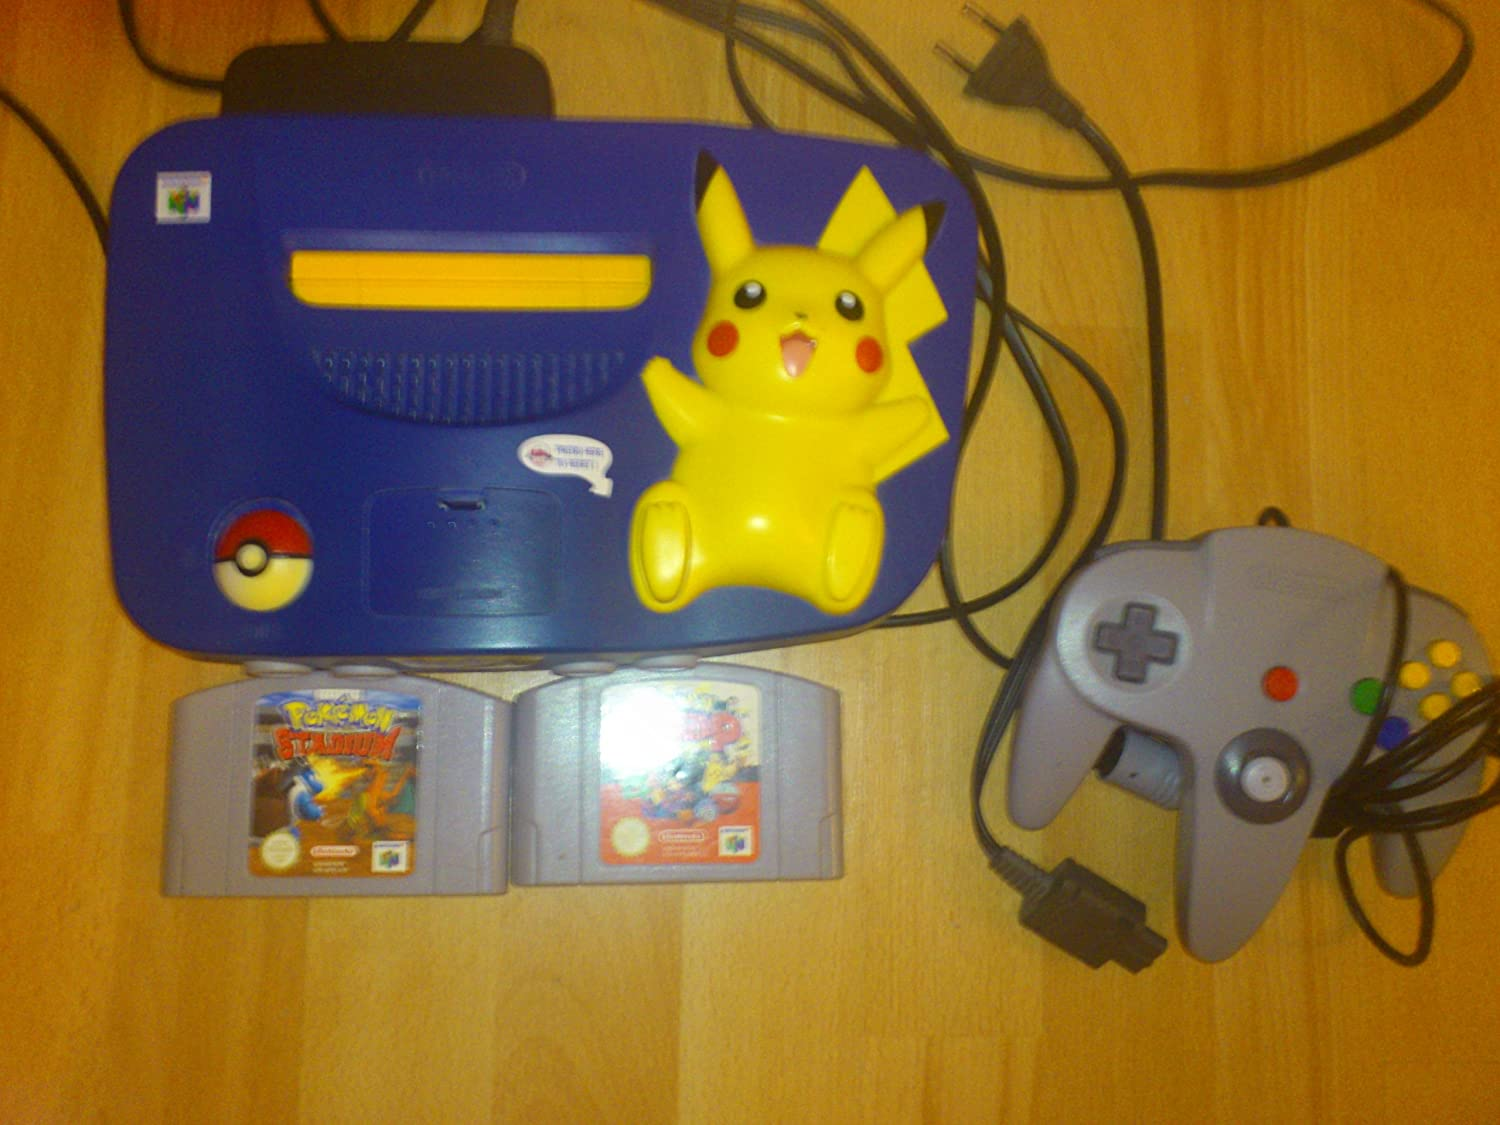 Nintendo 64 System – Video Game Console – Pikachu Bundle